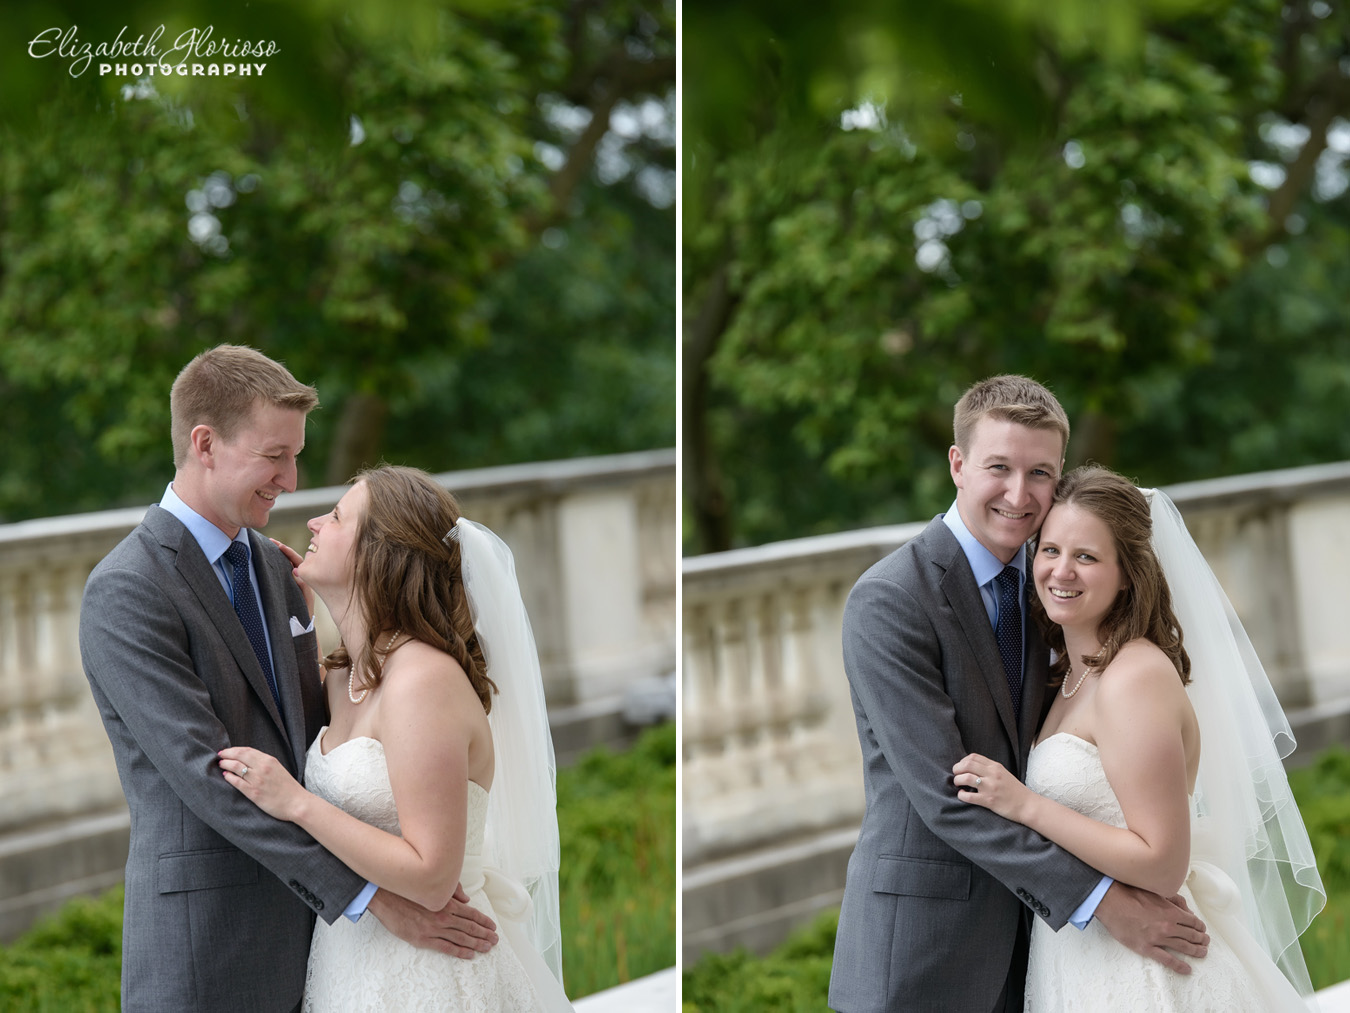 Wedding portraits at the Cleveland Museum